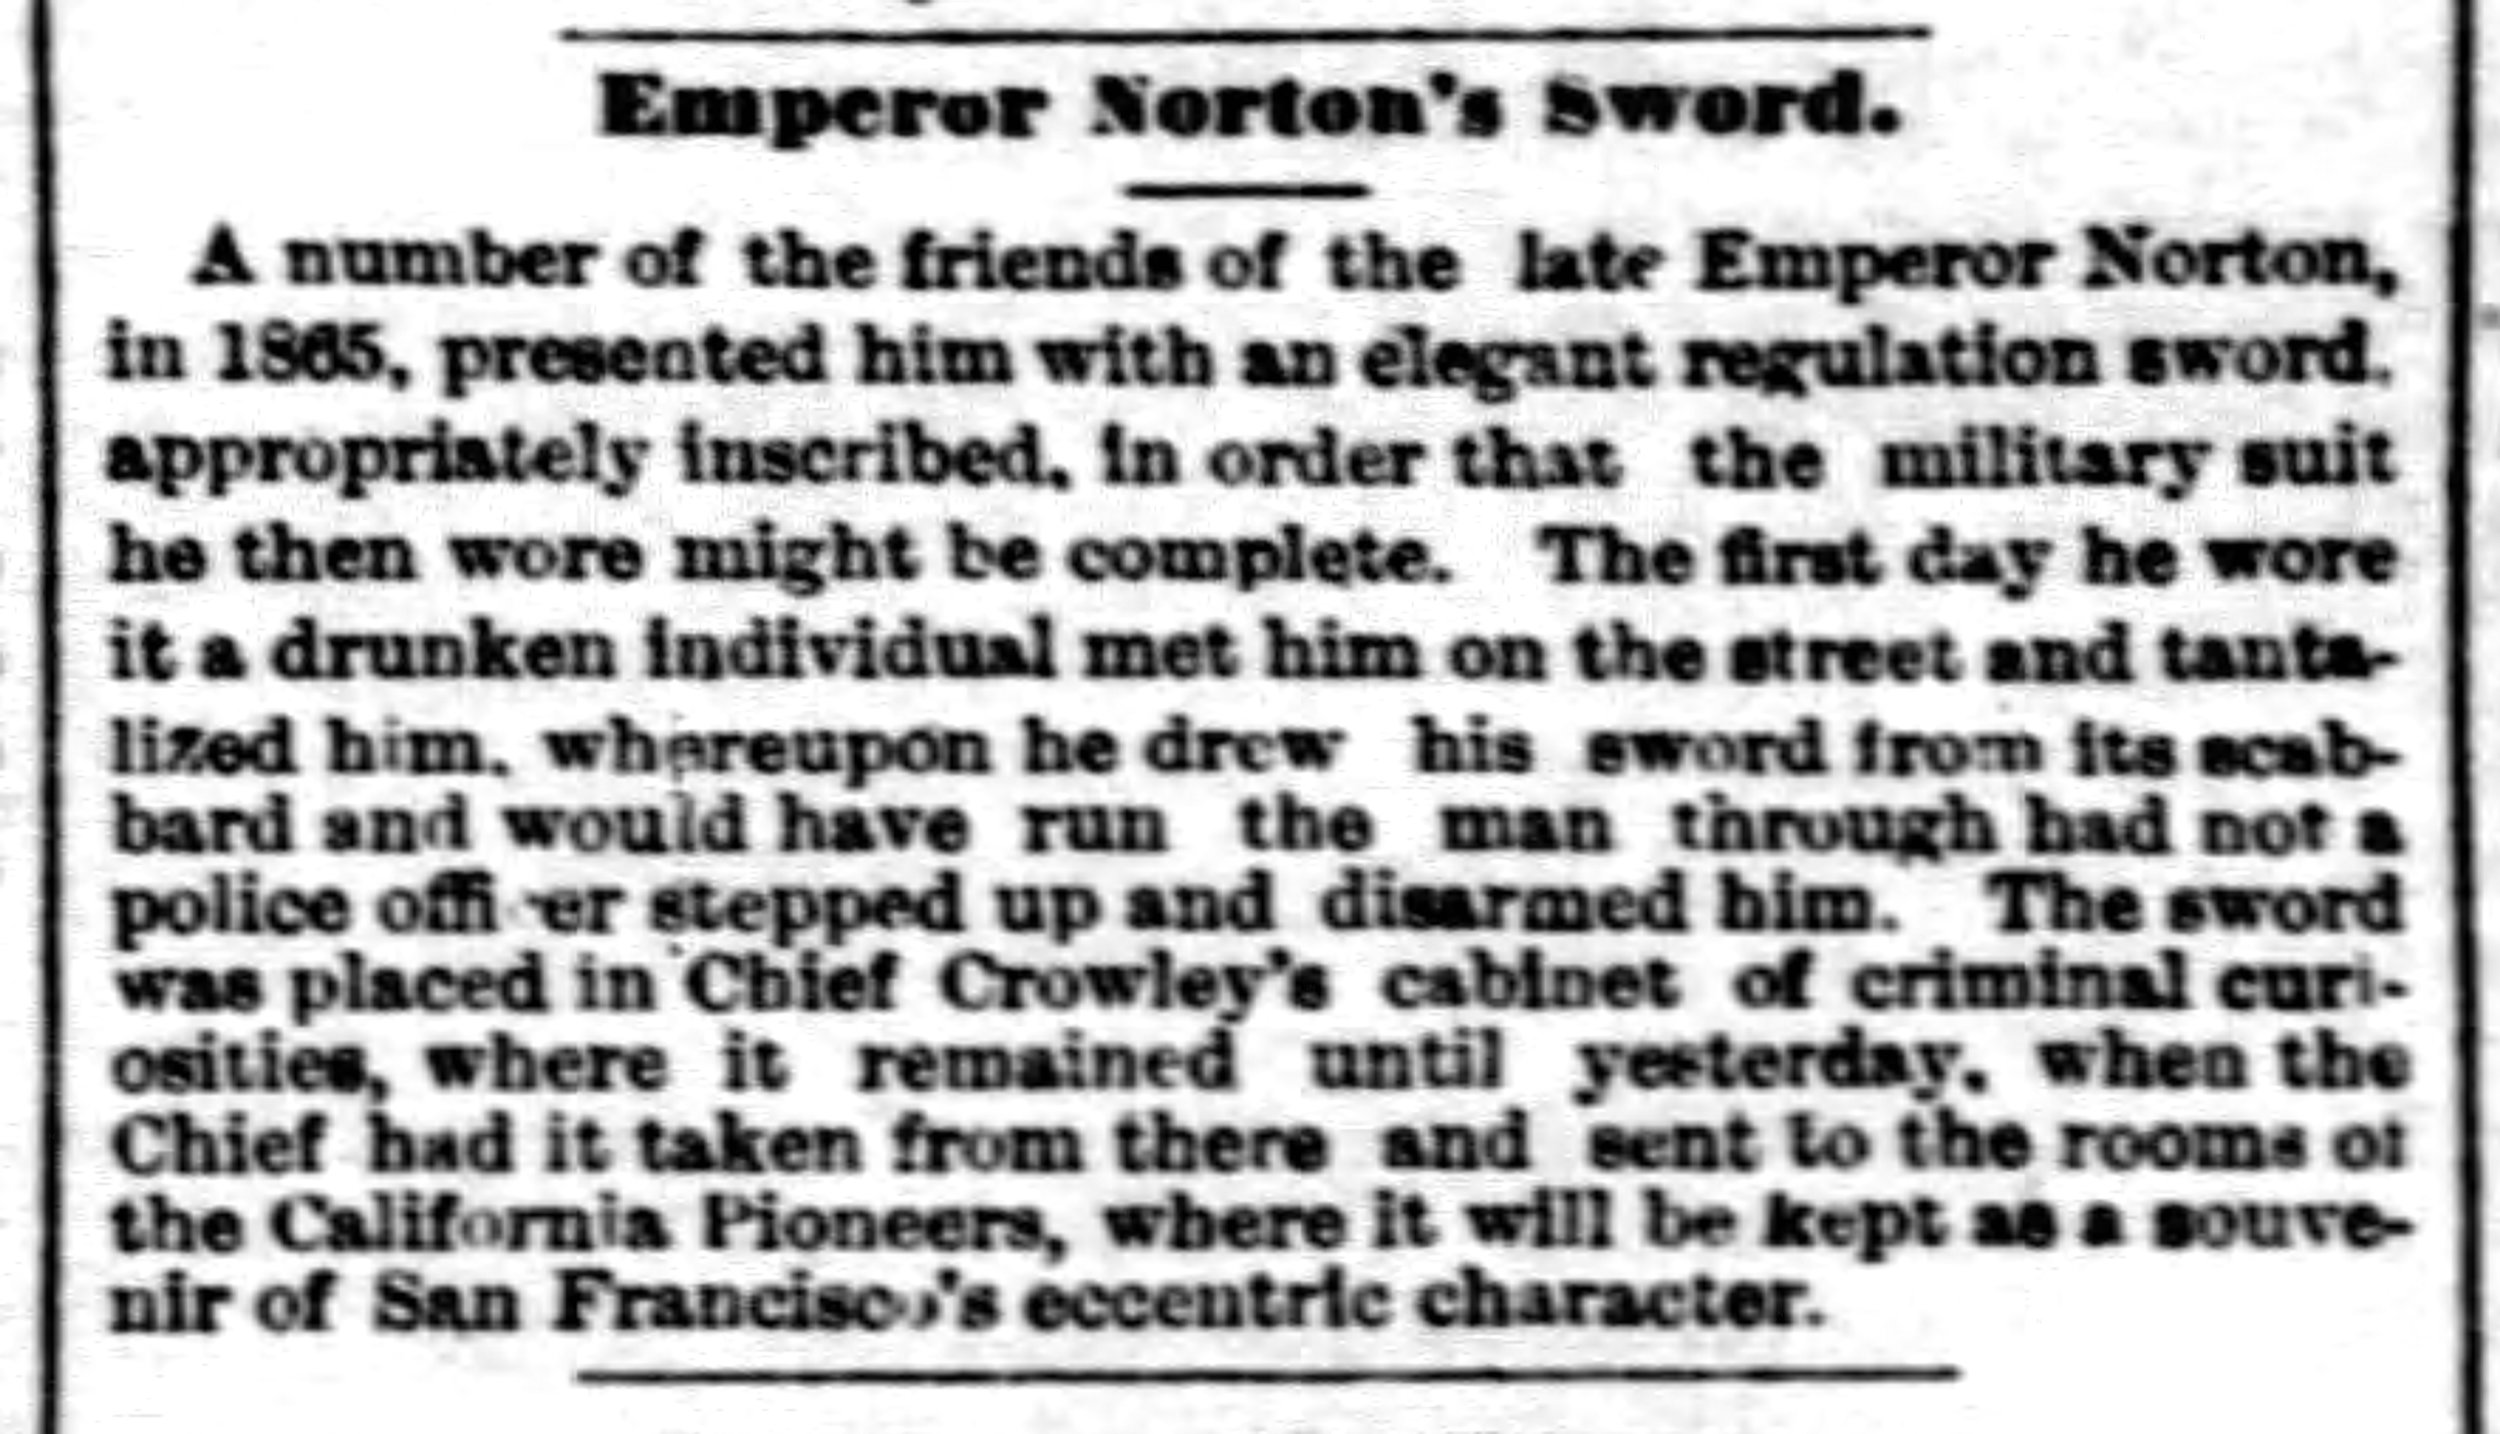 """""""Emperor Norton's Sword,""""  San Francisco Examiner , 27 February 1880 , p.3. View the entire page  here . Source: Newspapers.com"""